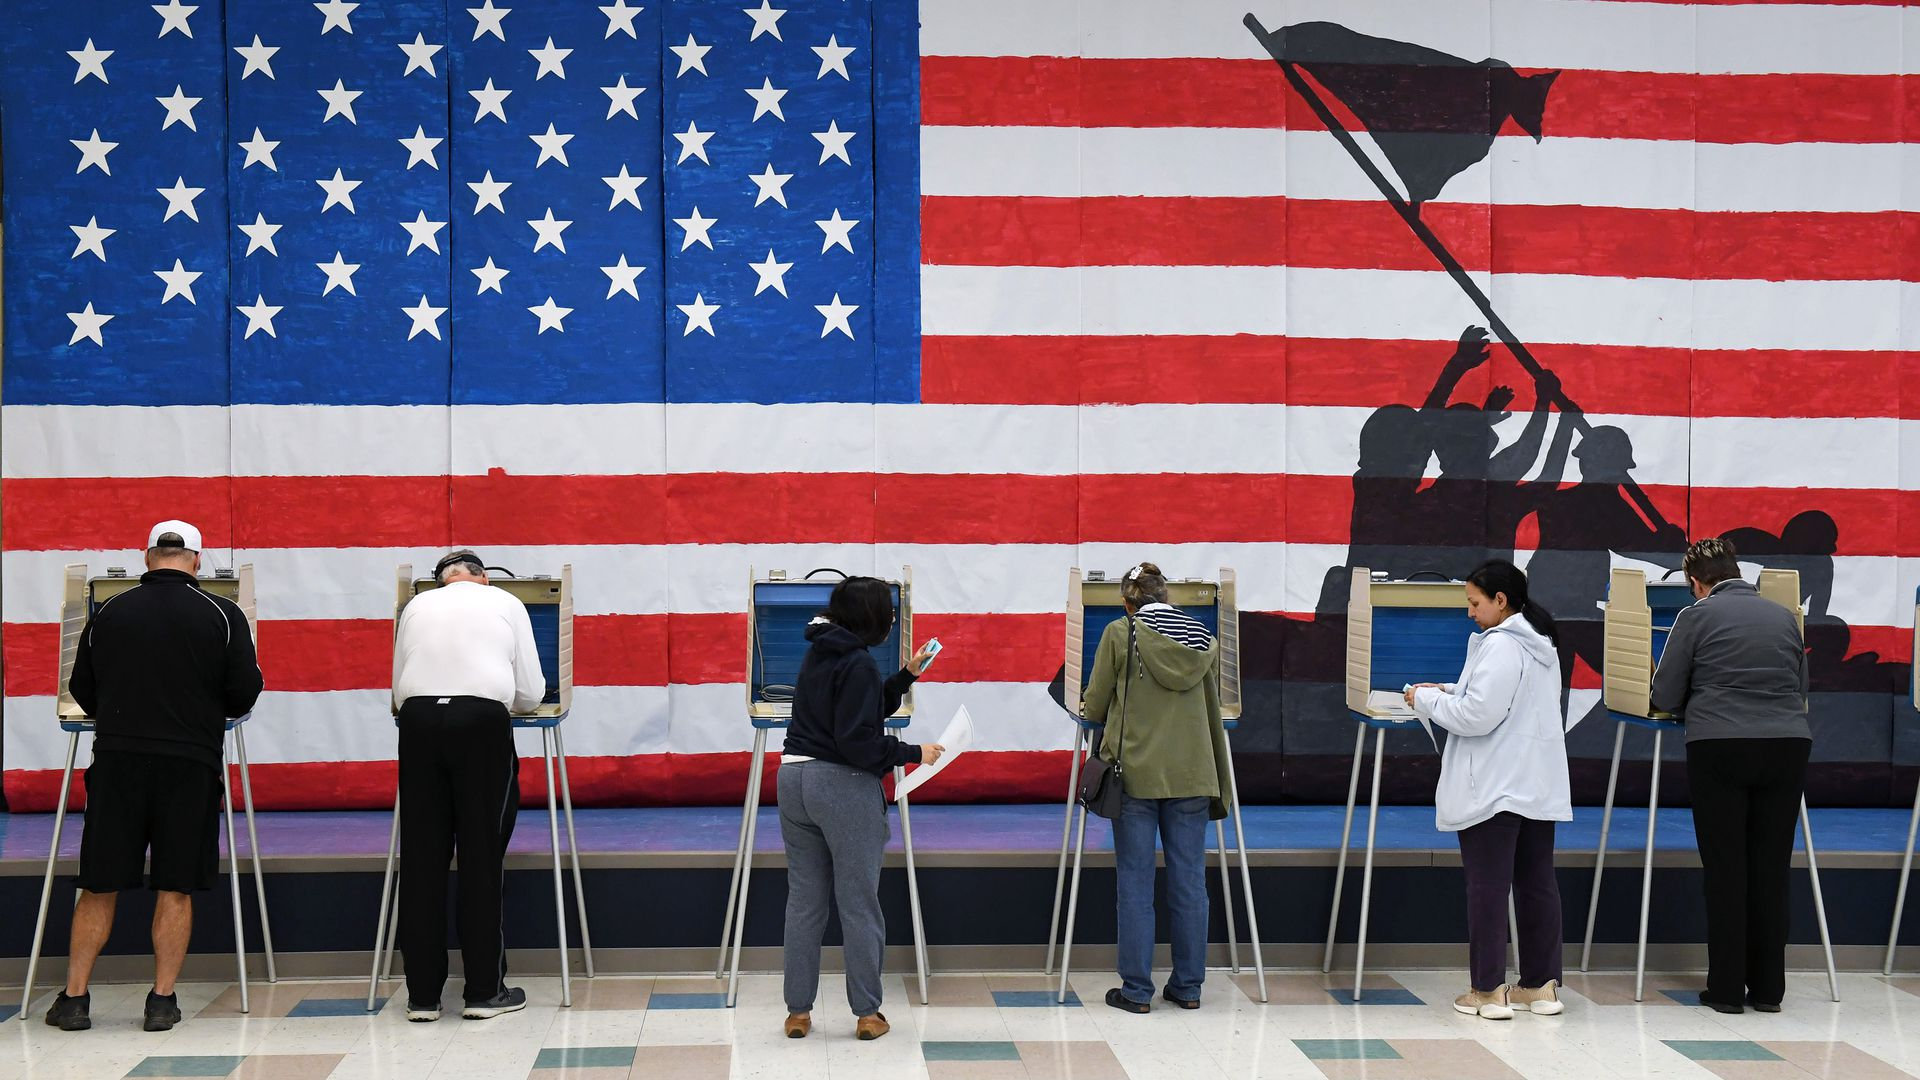 People voting at booths with an American flag background.